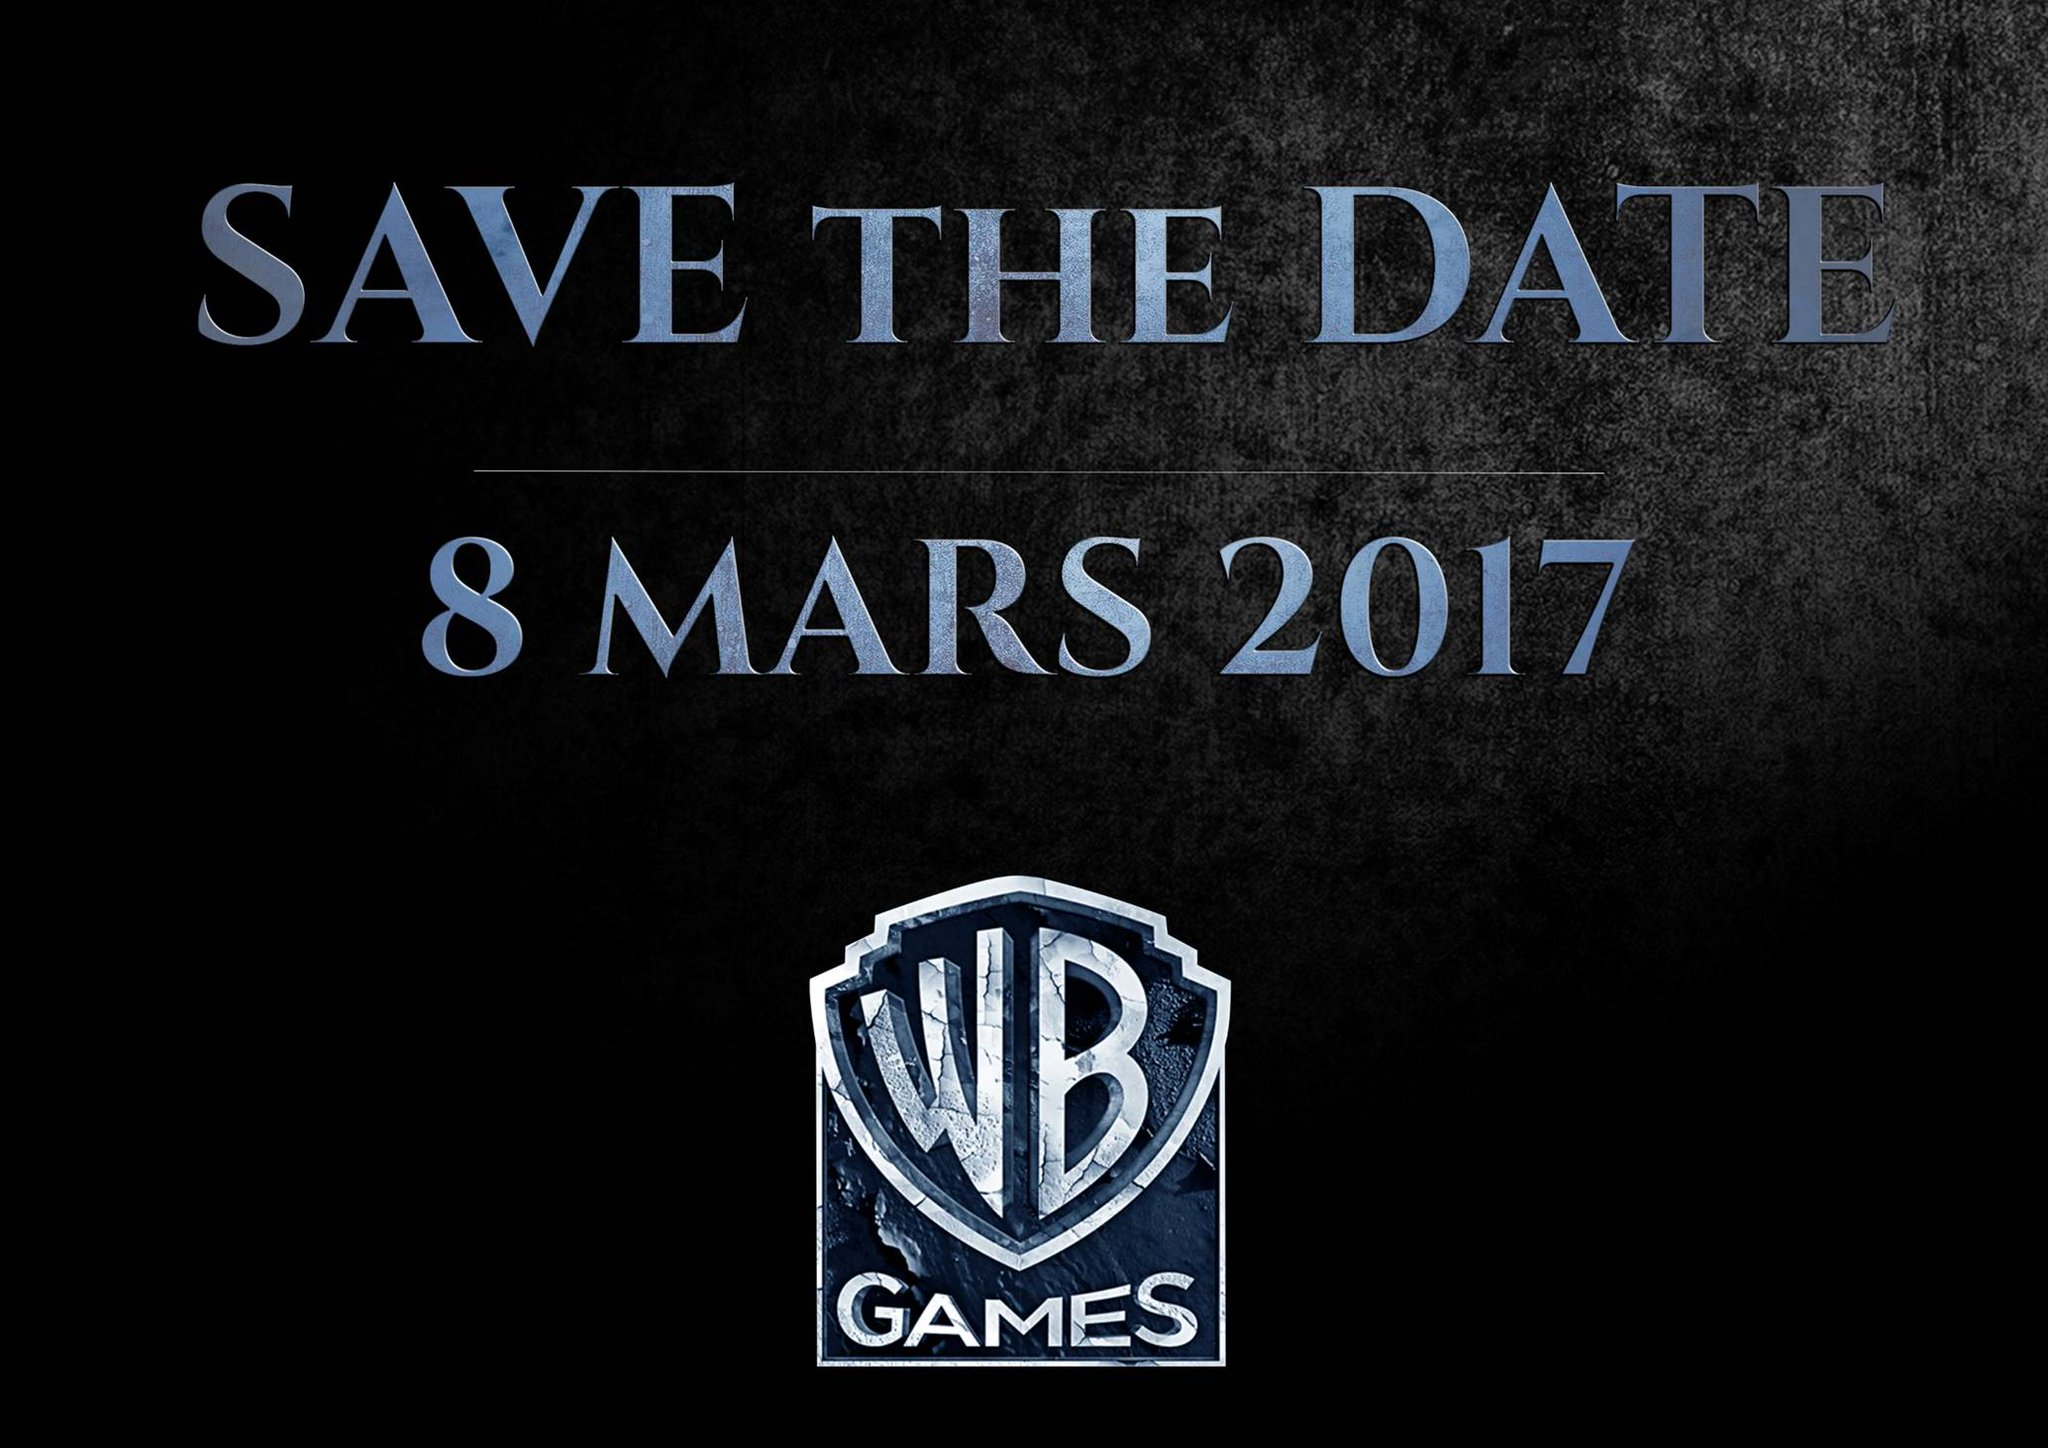 WB Games Teases New Game Reveal